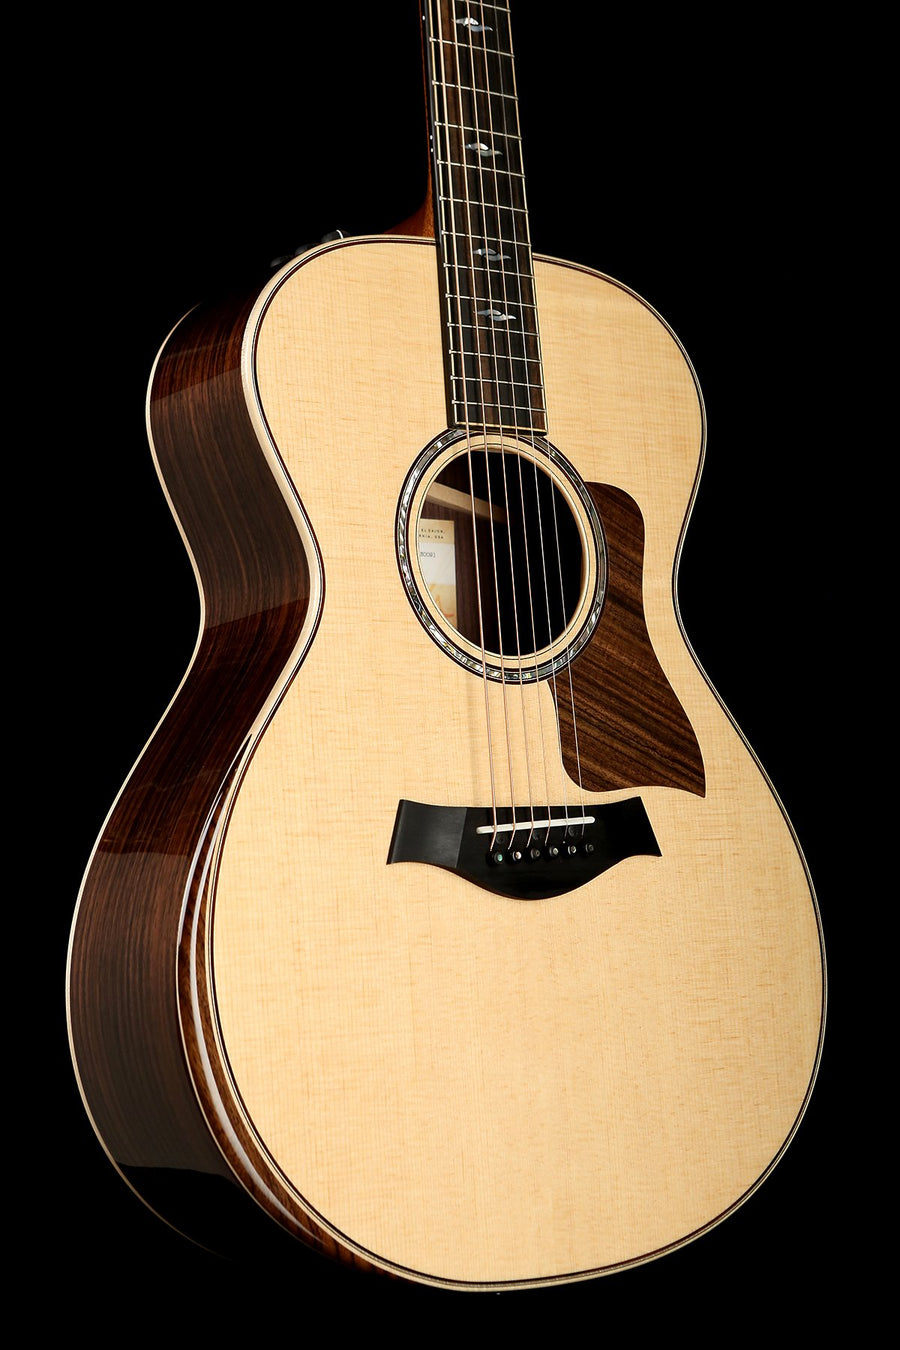 Taylor 812E V-Class Acoustic Electric Guitar